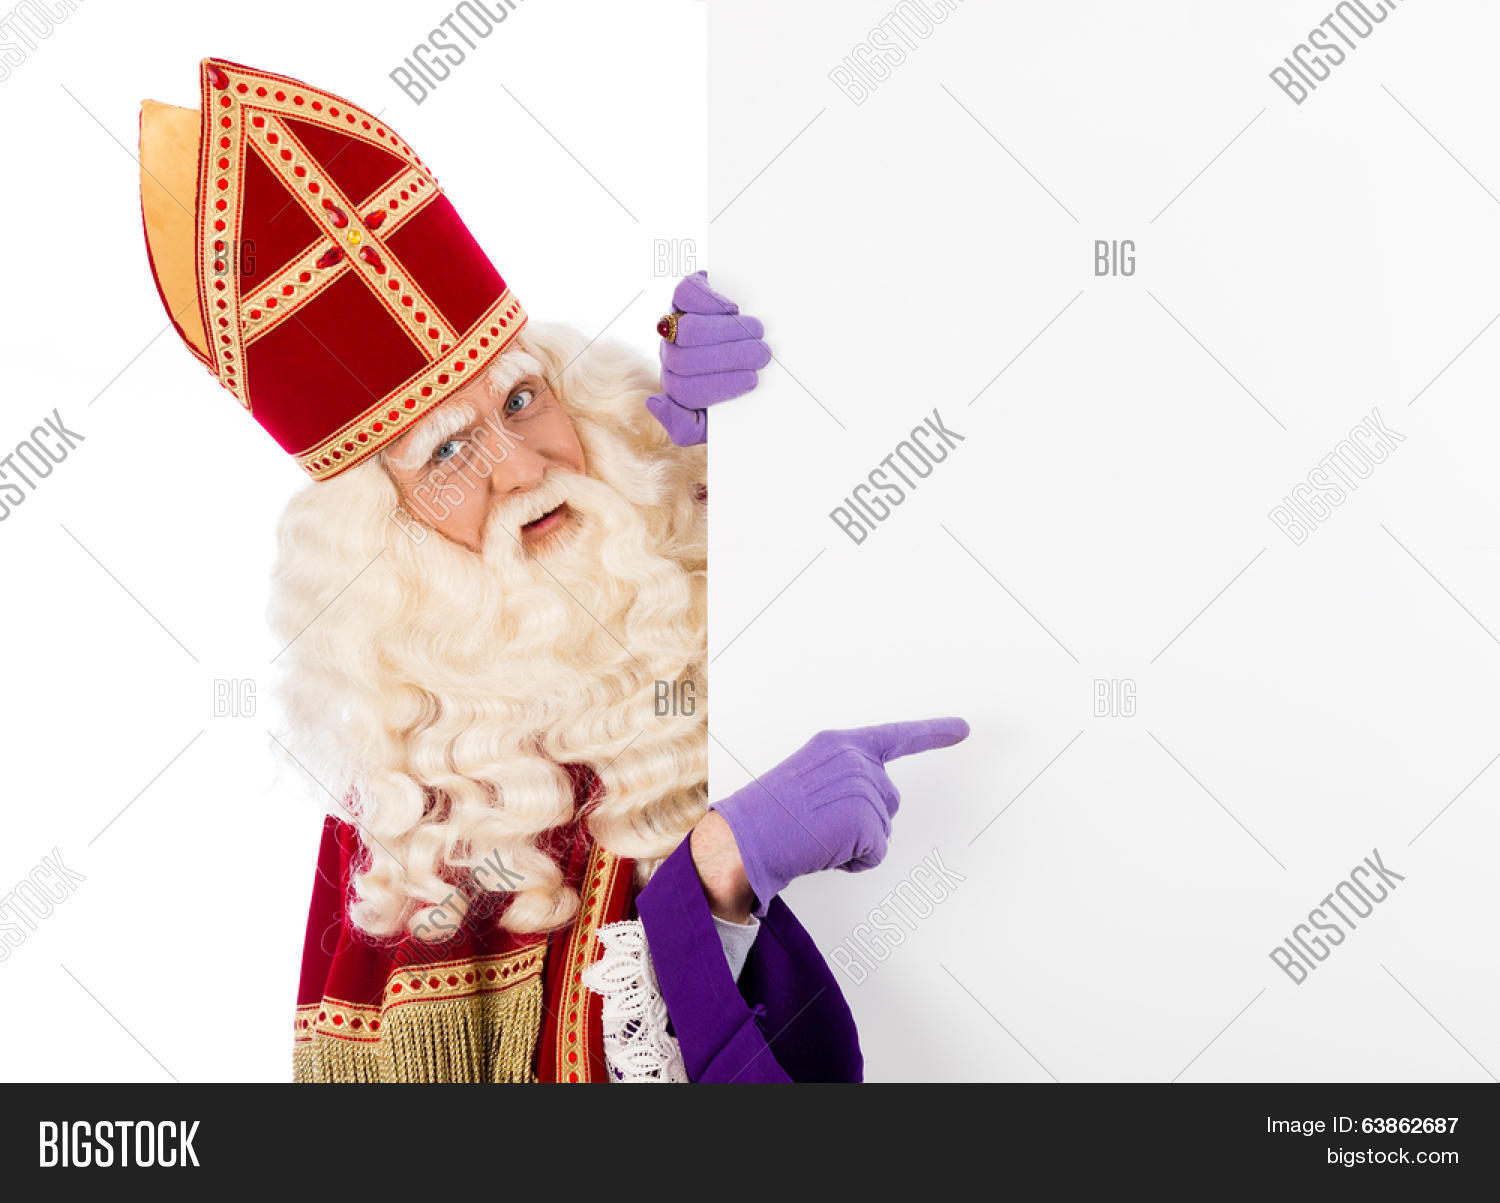 c489c0a55f56e Sinterklaas with placard. isolated on white background. Dutch character of  Santa Claus